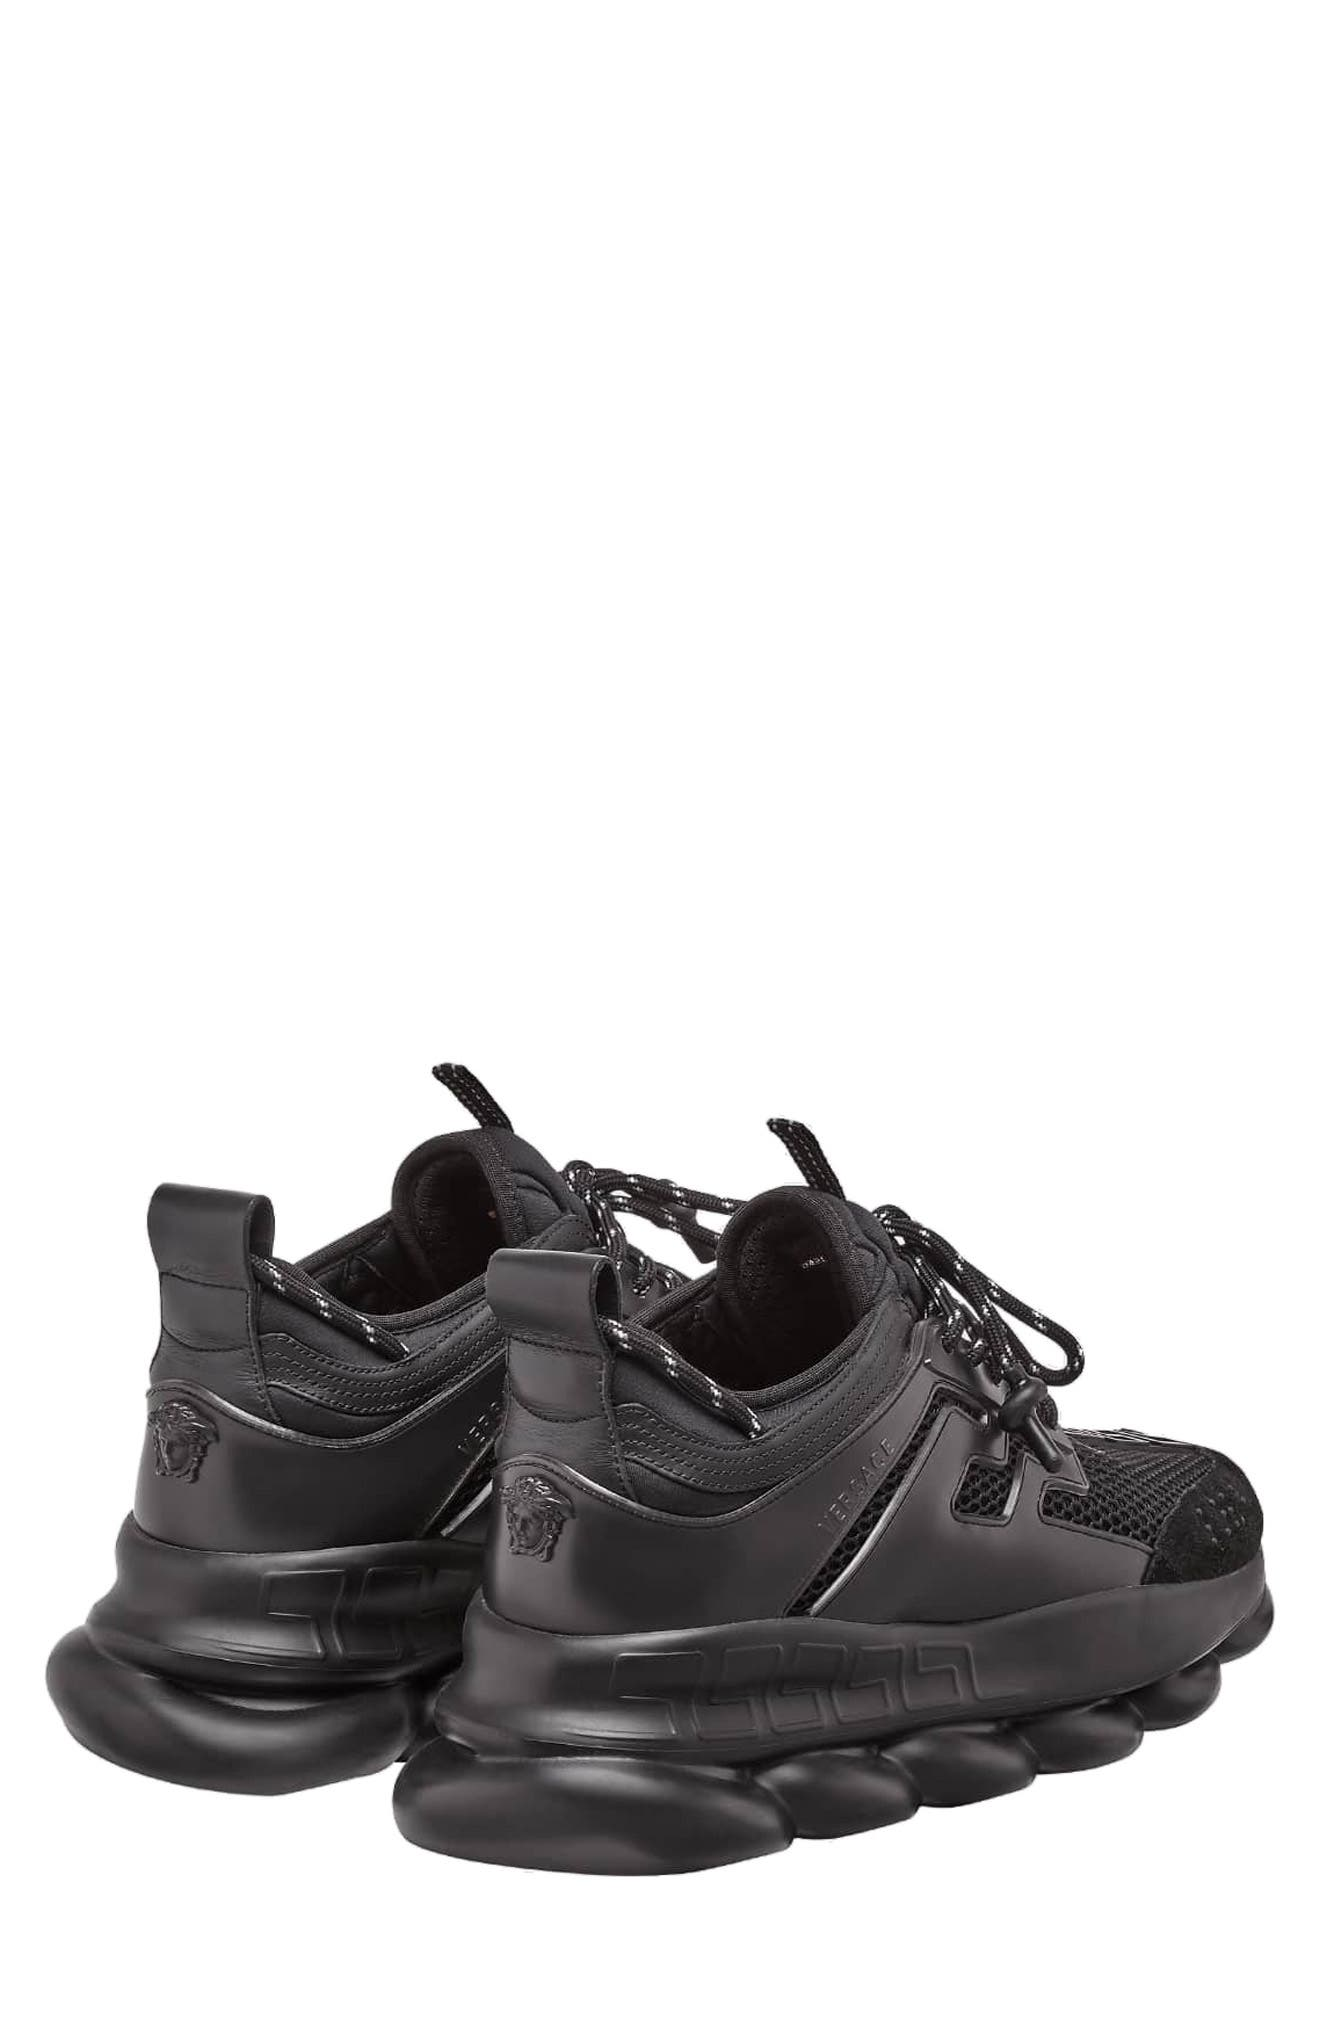 VERSACE FIRST LINE, Versace Chain Reaction Sneaker, Alternate thumbnail 2, color, NERO